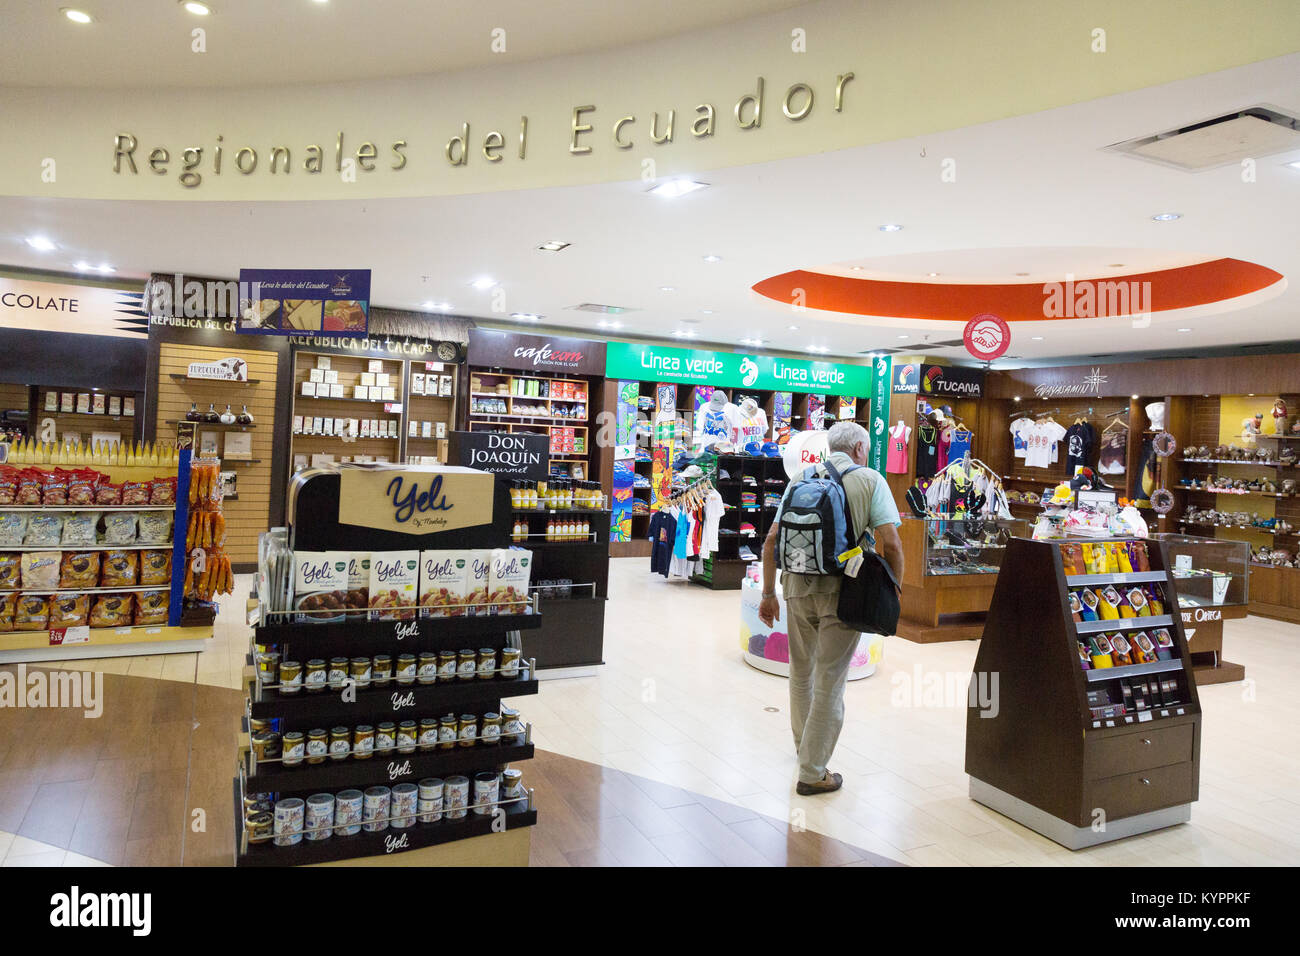 José Joaquín Stock Photos & José Joaquín Stock Images - Alamy